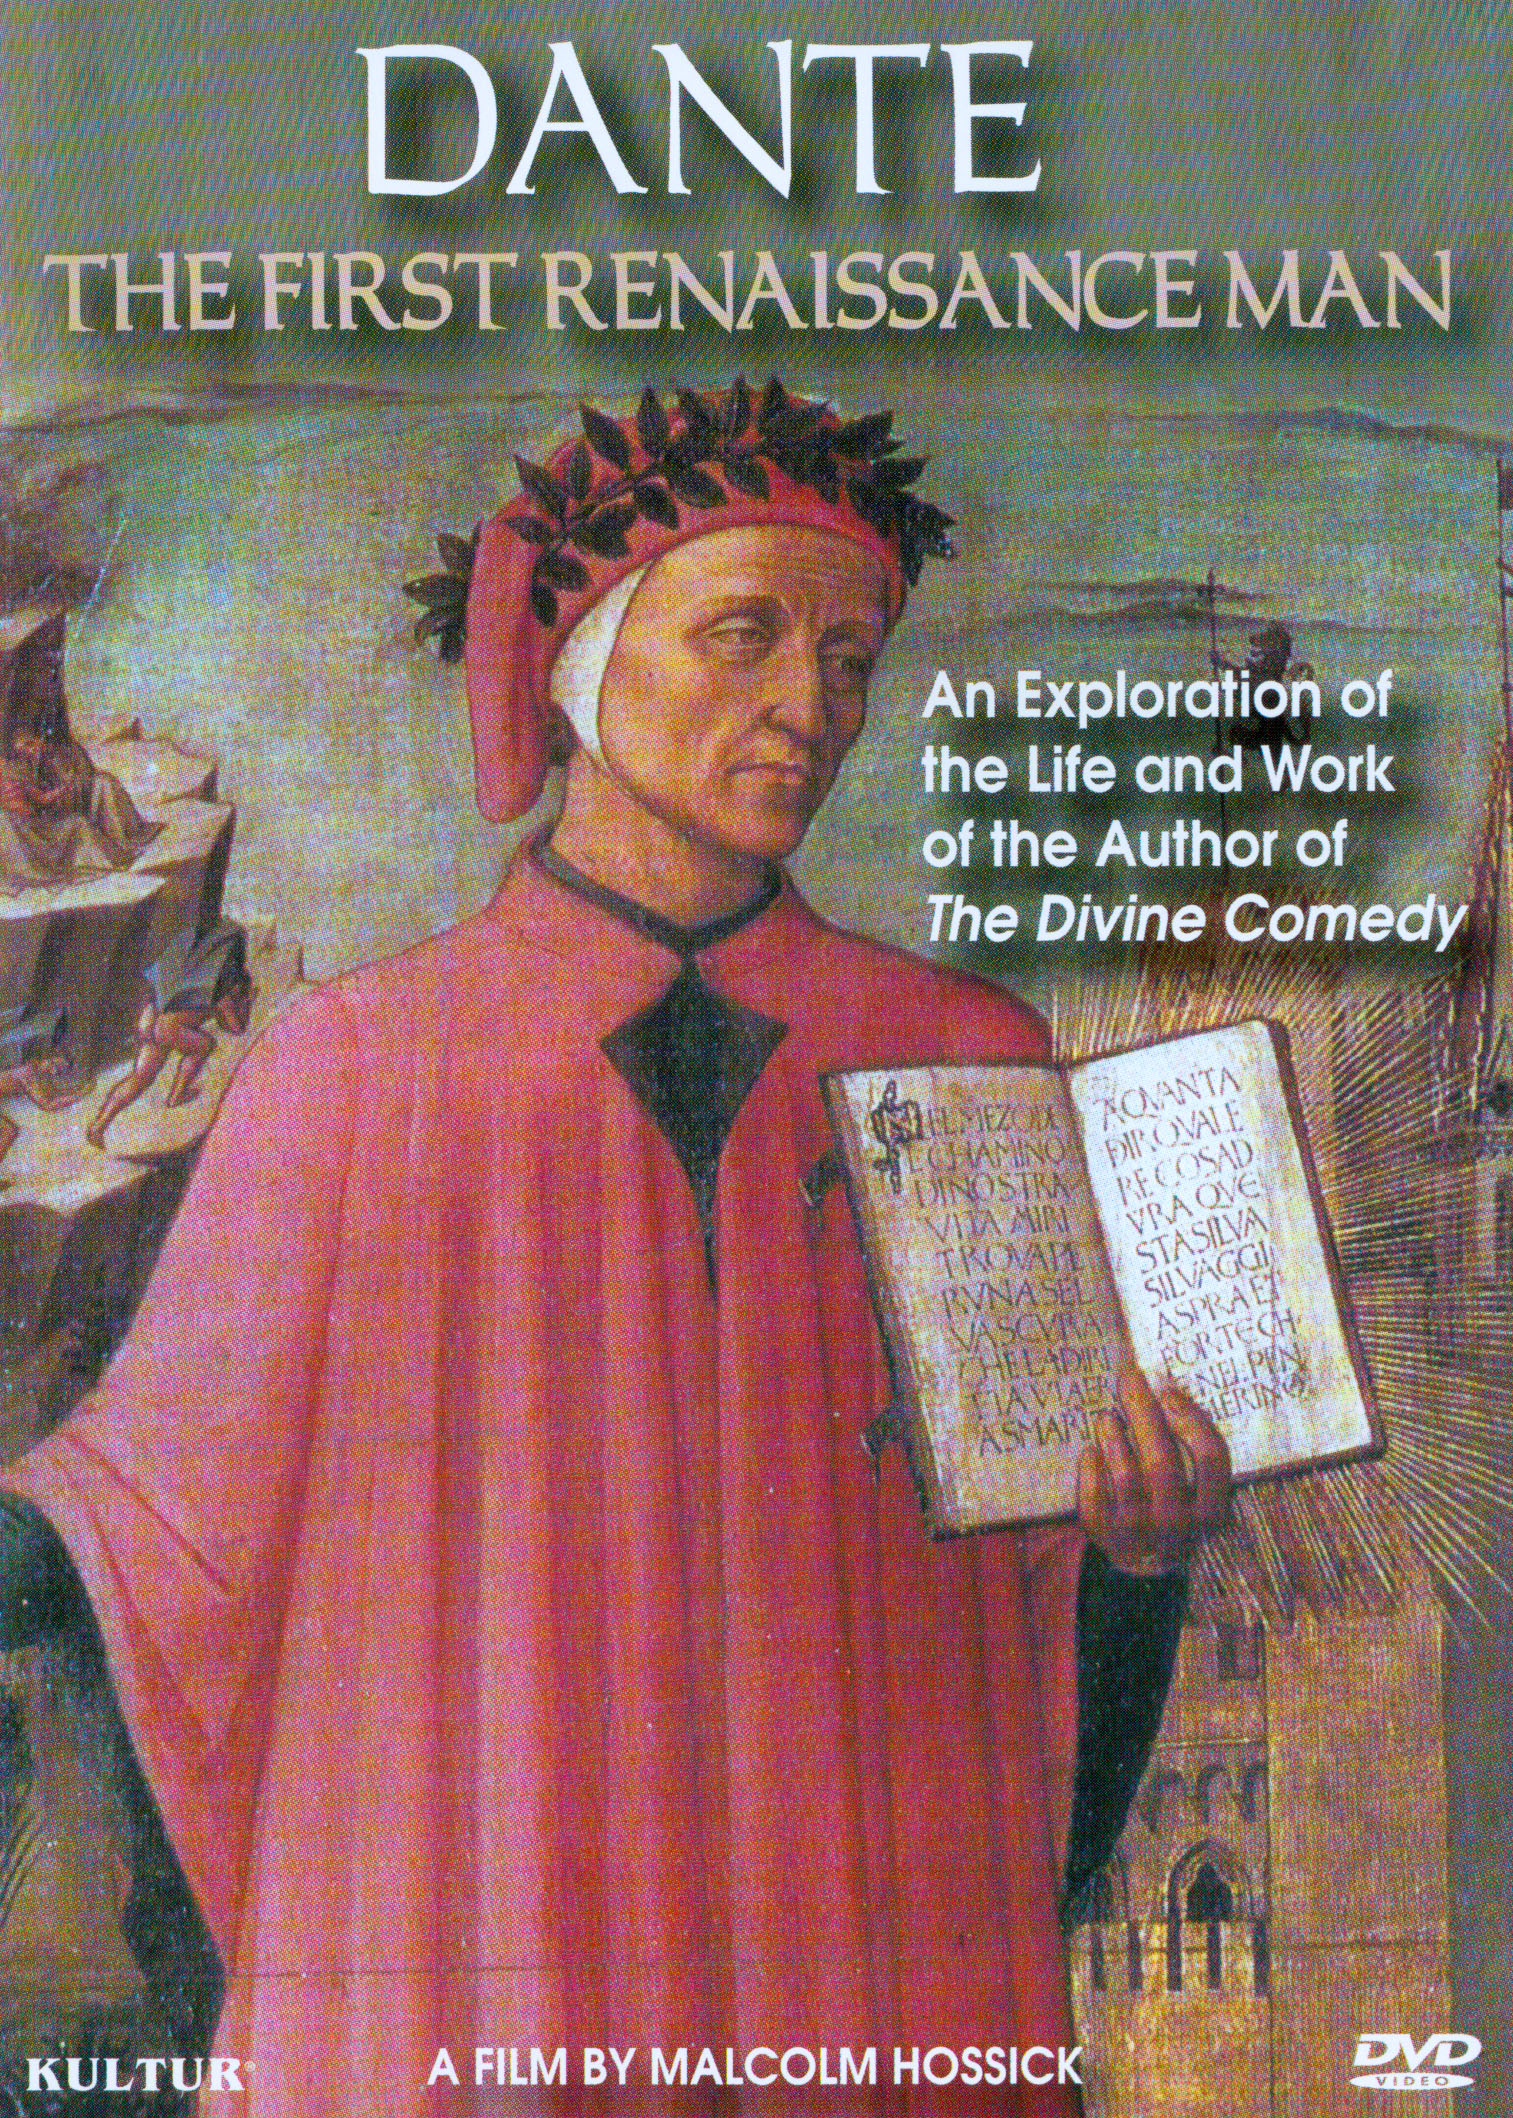 Dante: The First Renaissance Man